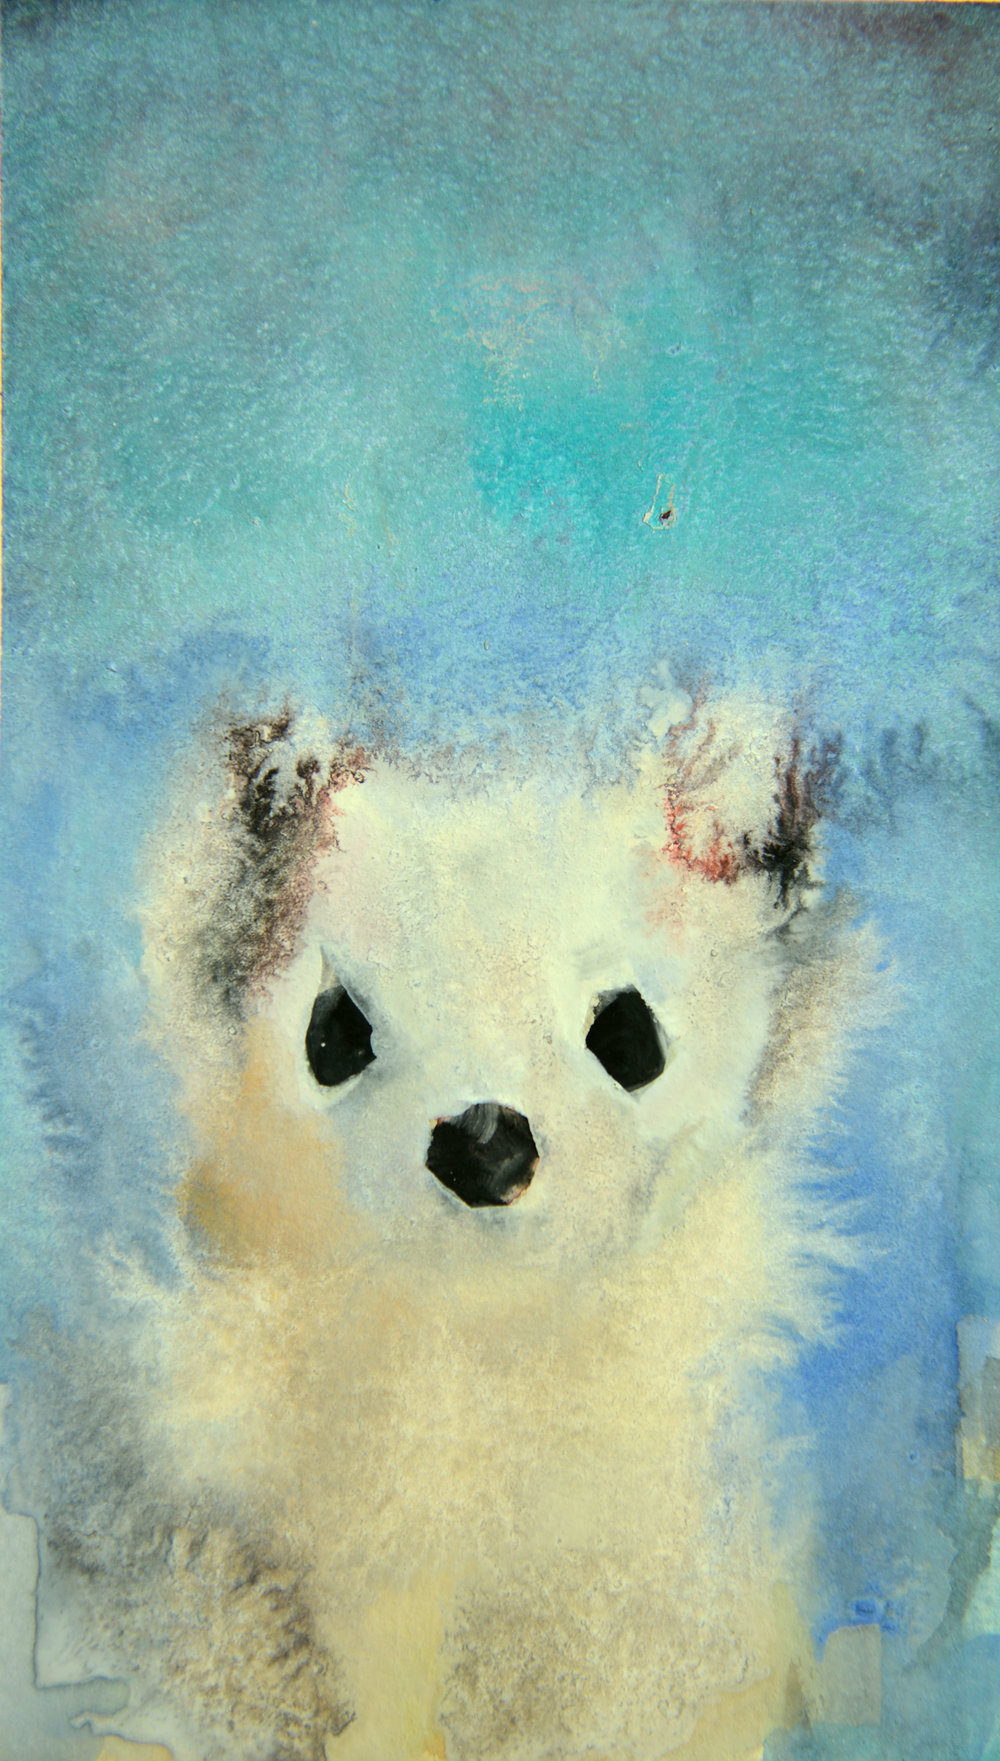 Ermine.MM on paper_inset on 11x7.5.jpg